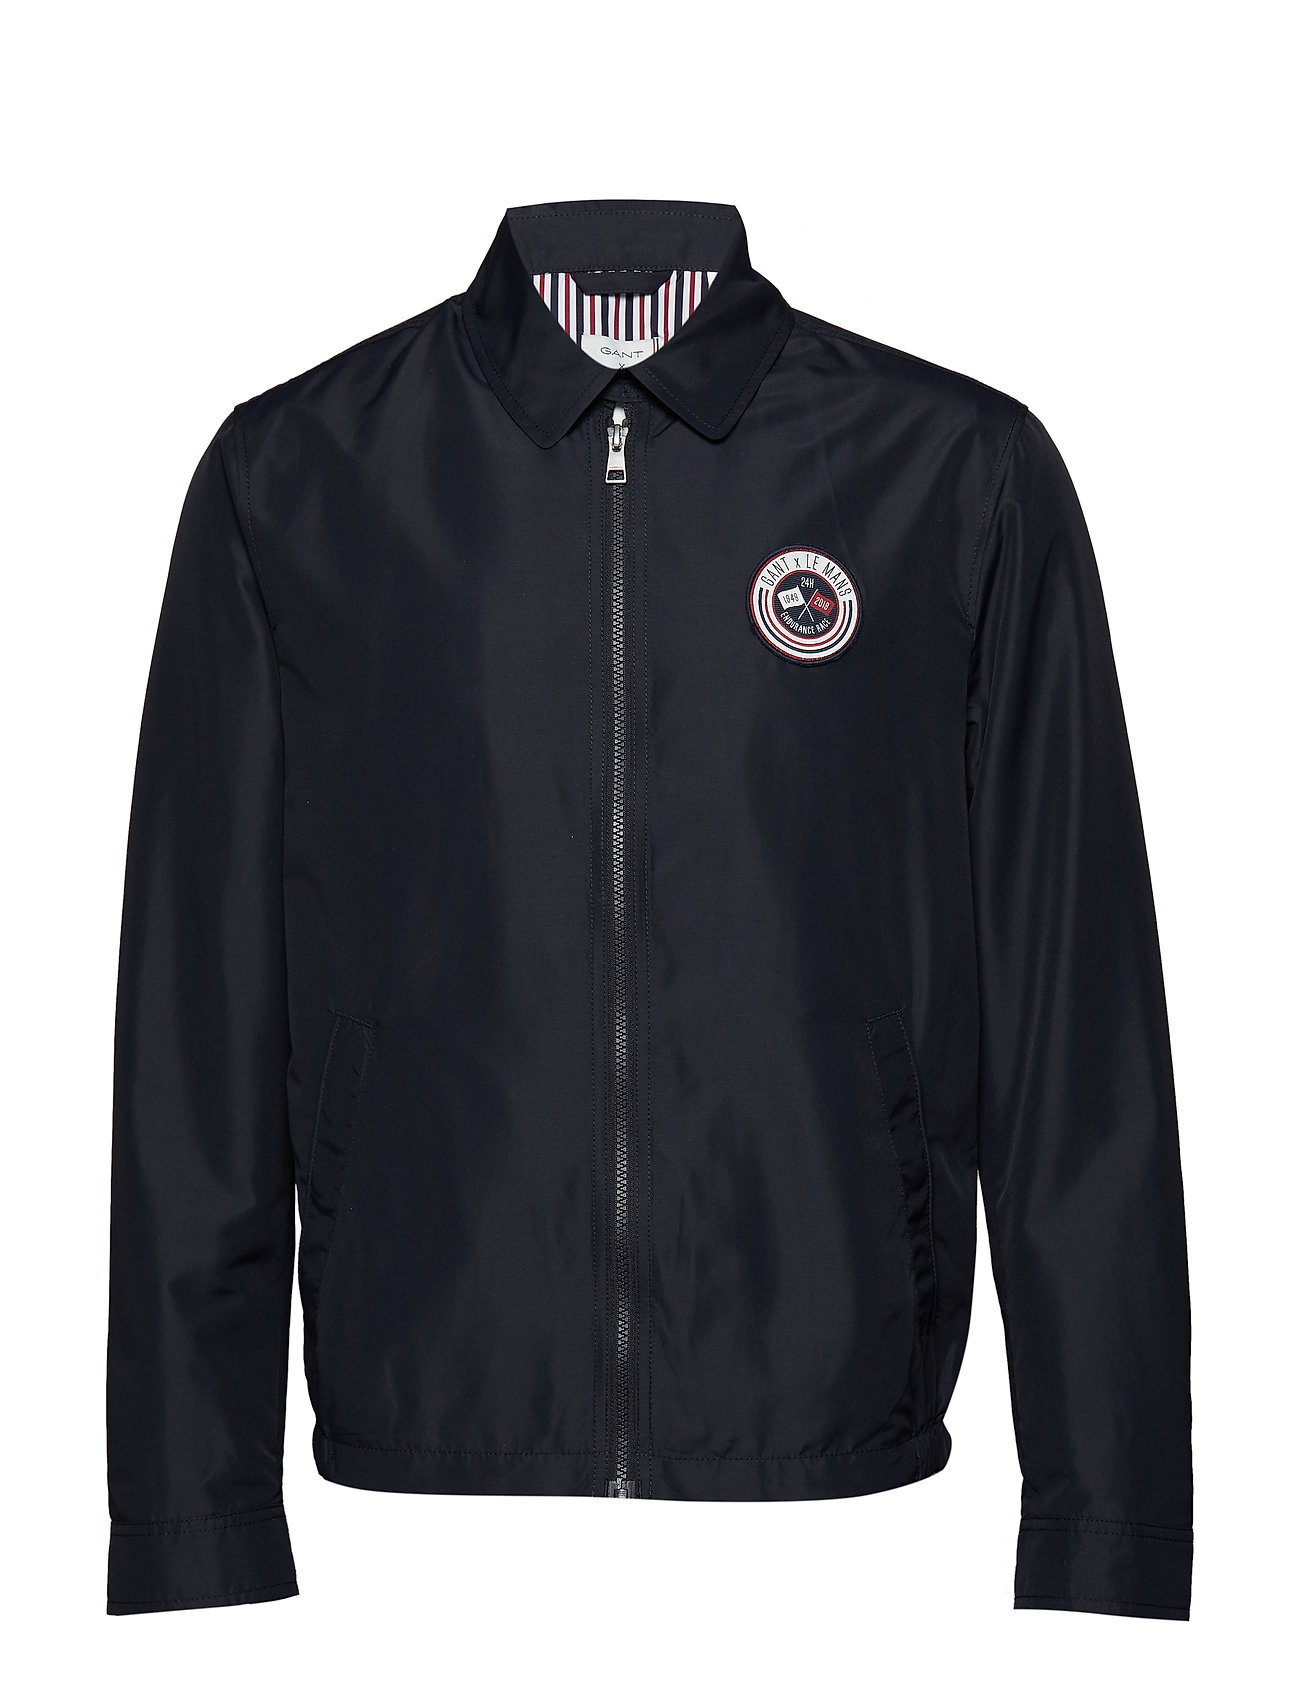 GANT LM. THE WINDCHEATER - EVENING BLUE